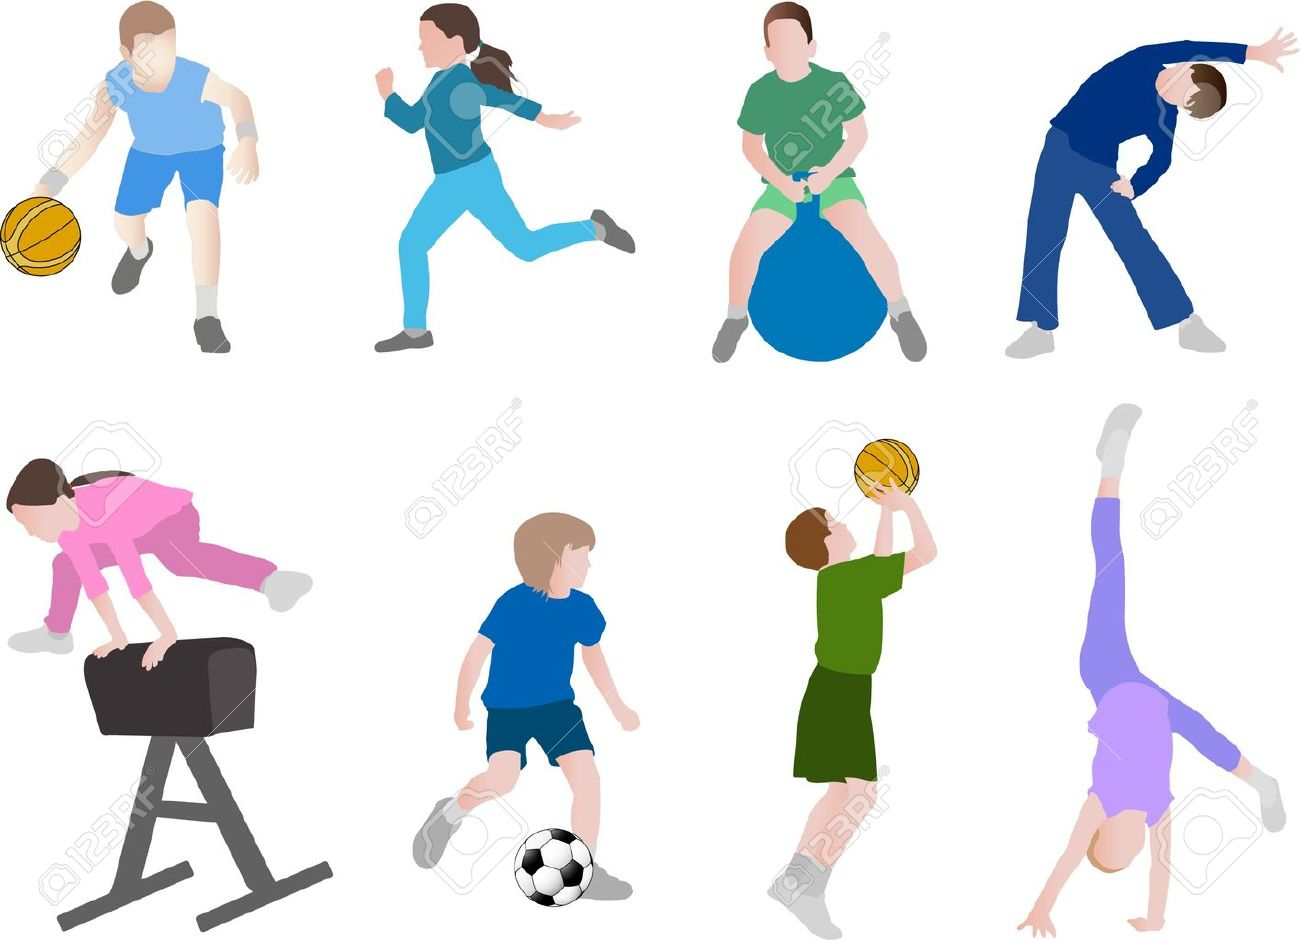 kids exercise children sport vector illustration - Exercise Pictures For Kids